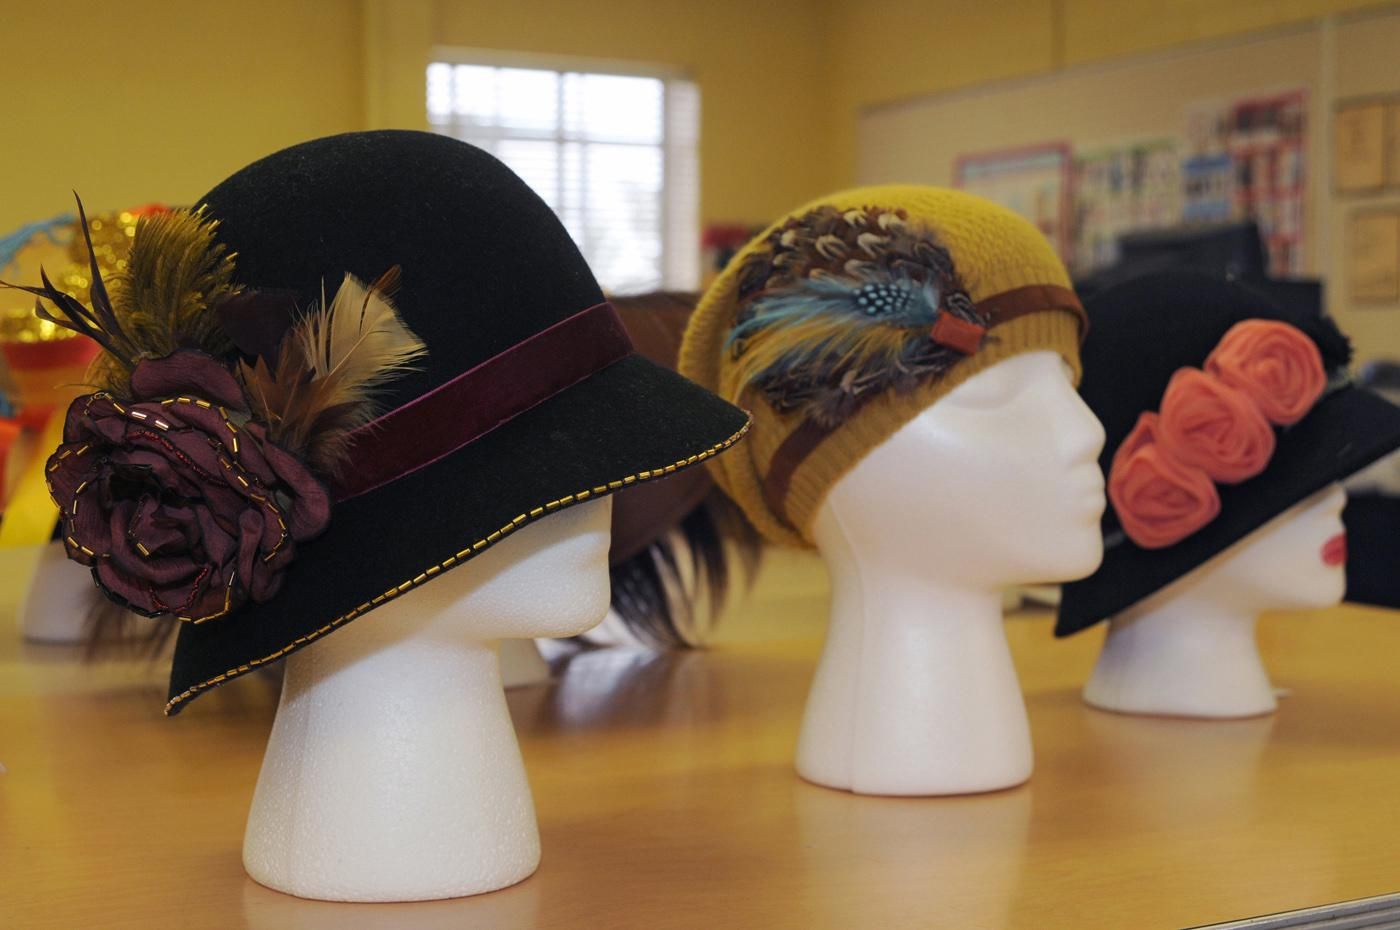 Students in a visual design class at Mississippi State University designed a collection of hats to thrill any fashionista. The hats will be part of a campus fashion show at semester's end. (Photo by Kat Lawrence)